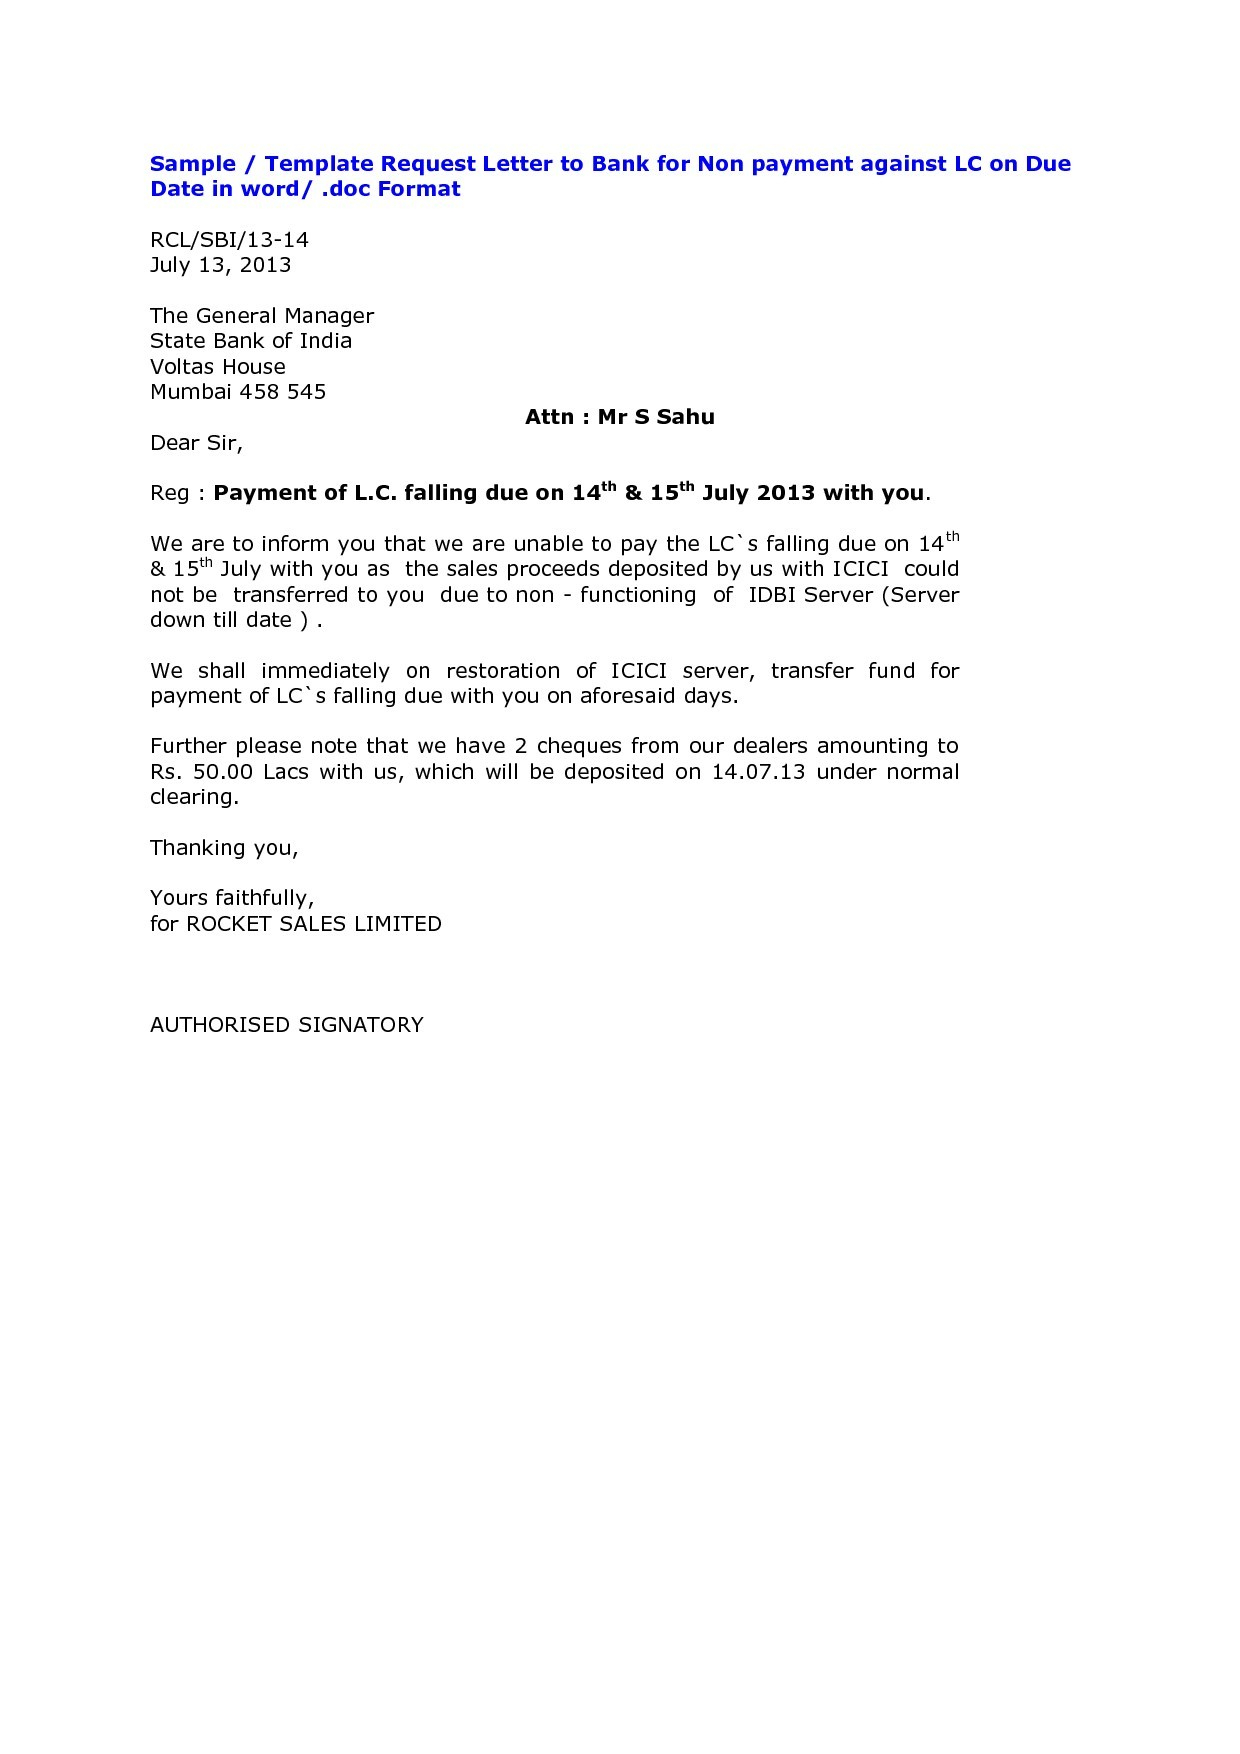 Refund Demand Letter Template - Request Letter for Refund Of Security Deposit 20 Best Of Letter